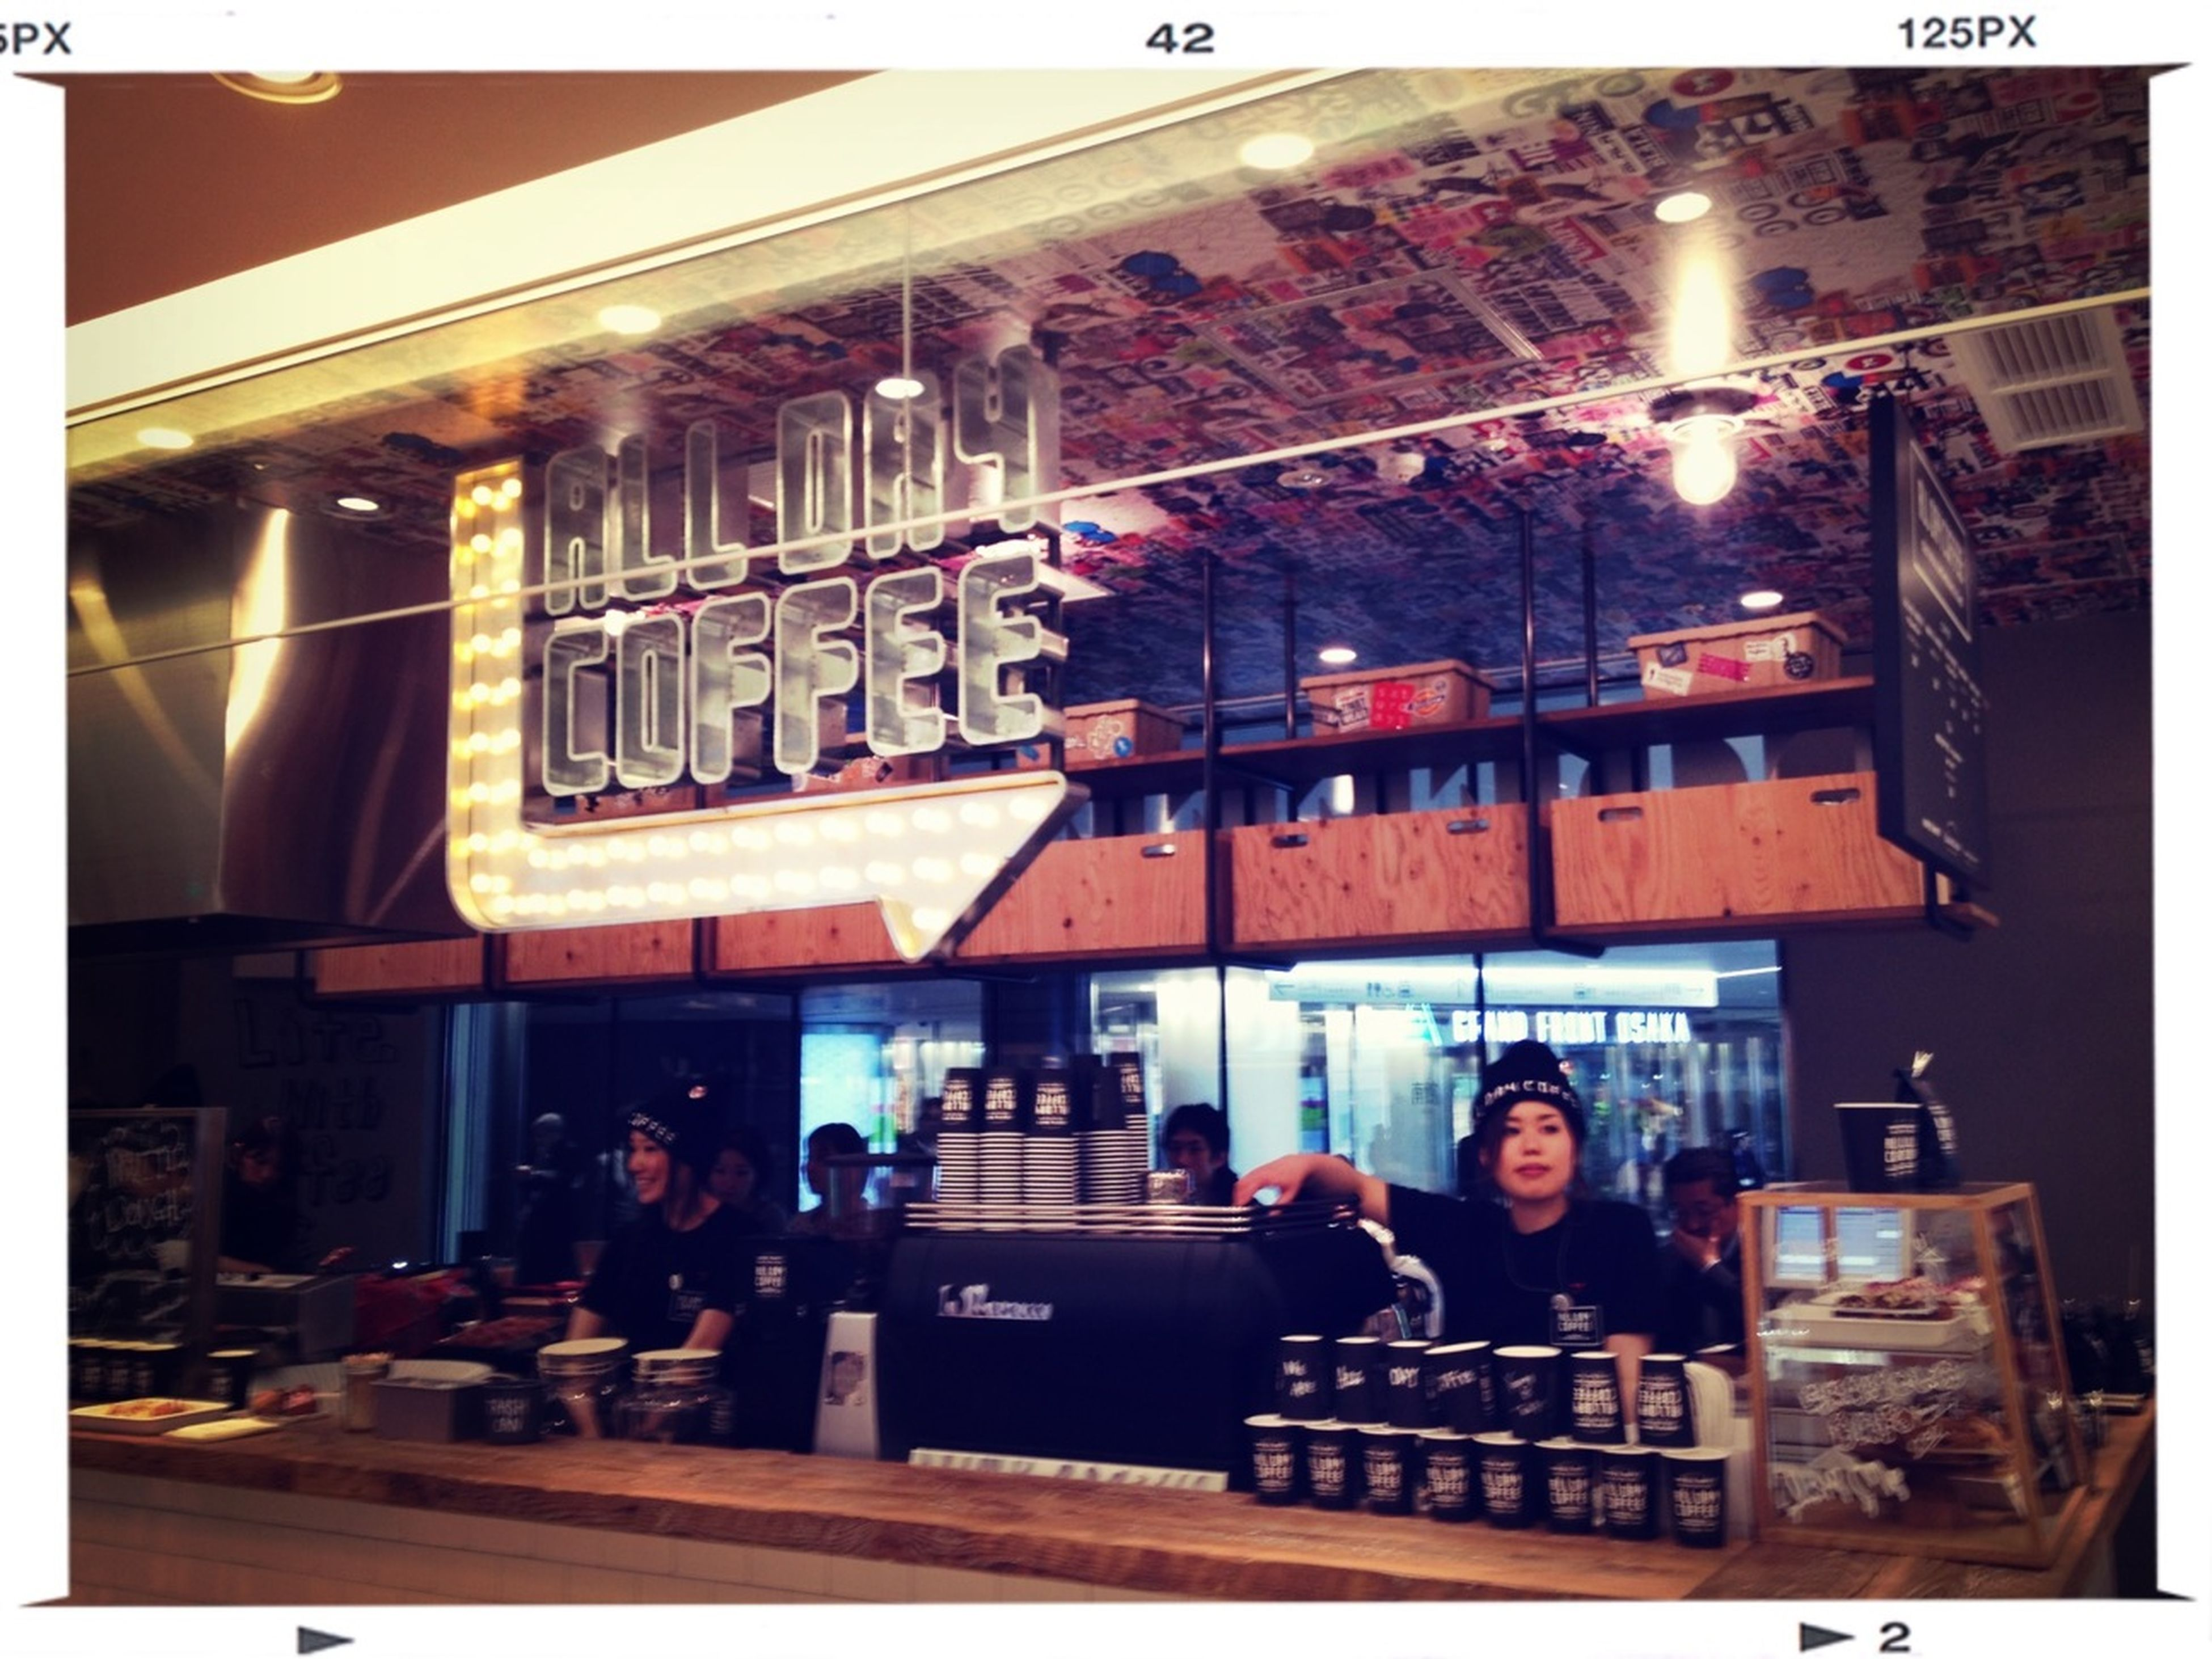 ALL DAY COFFEE。カッコイイ!